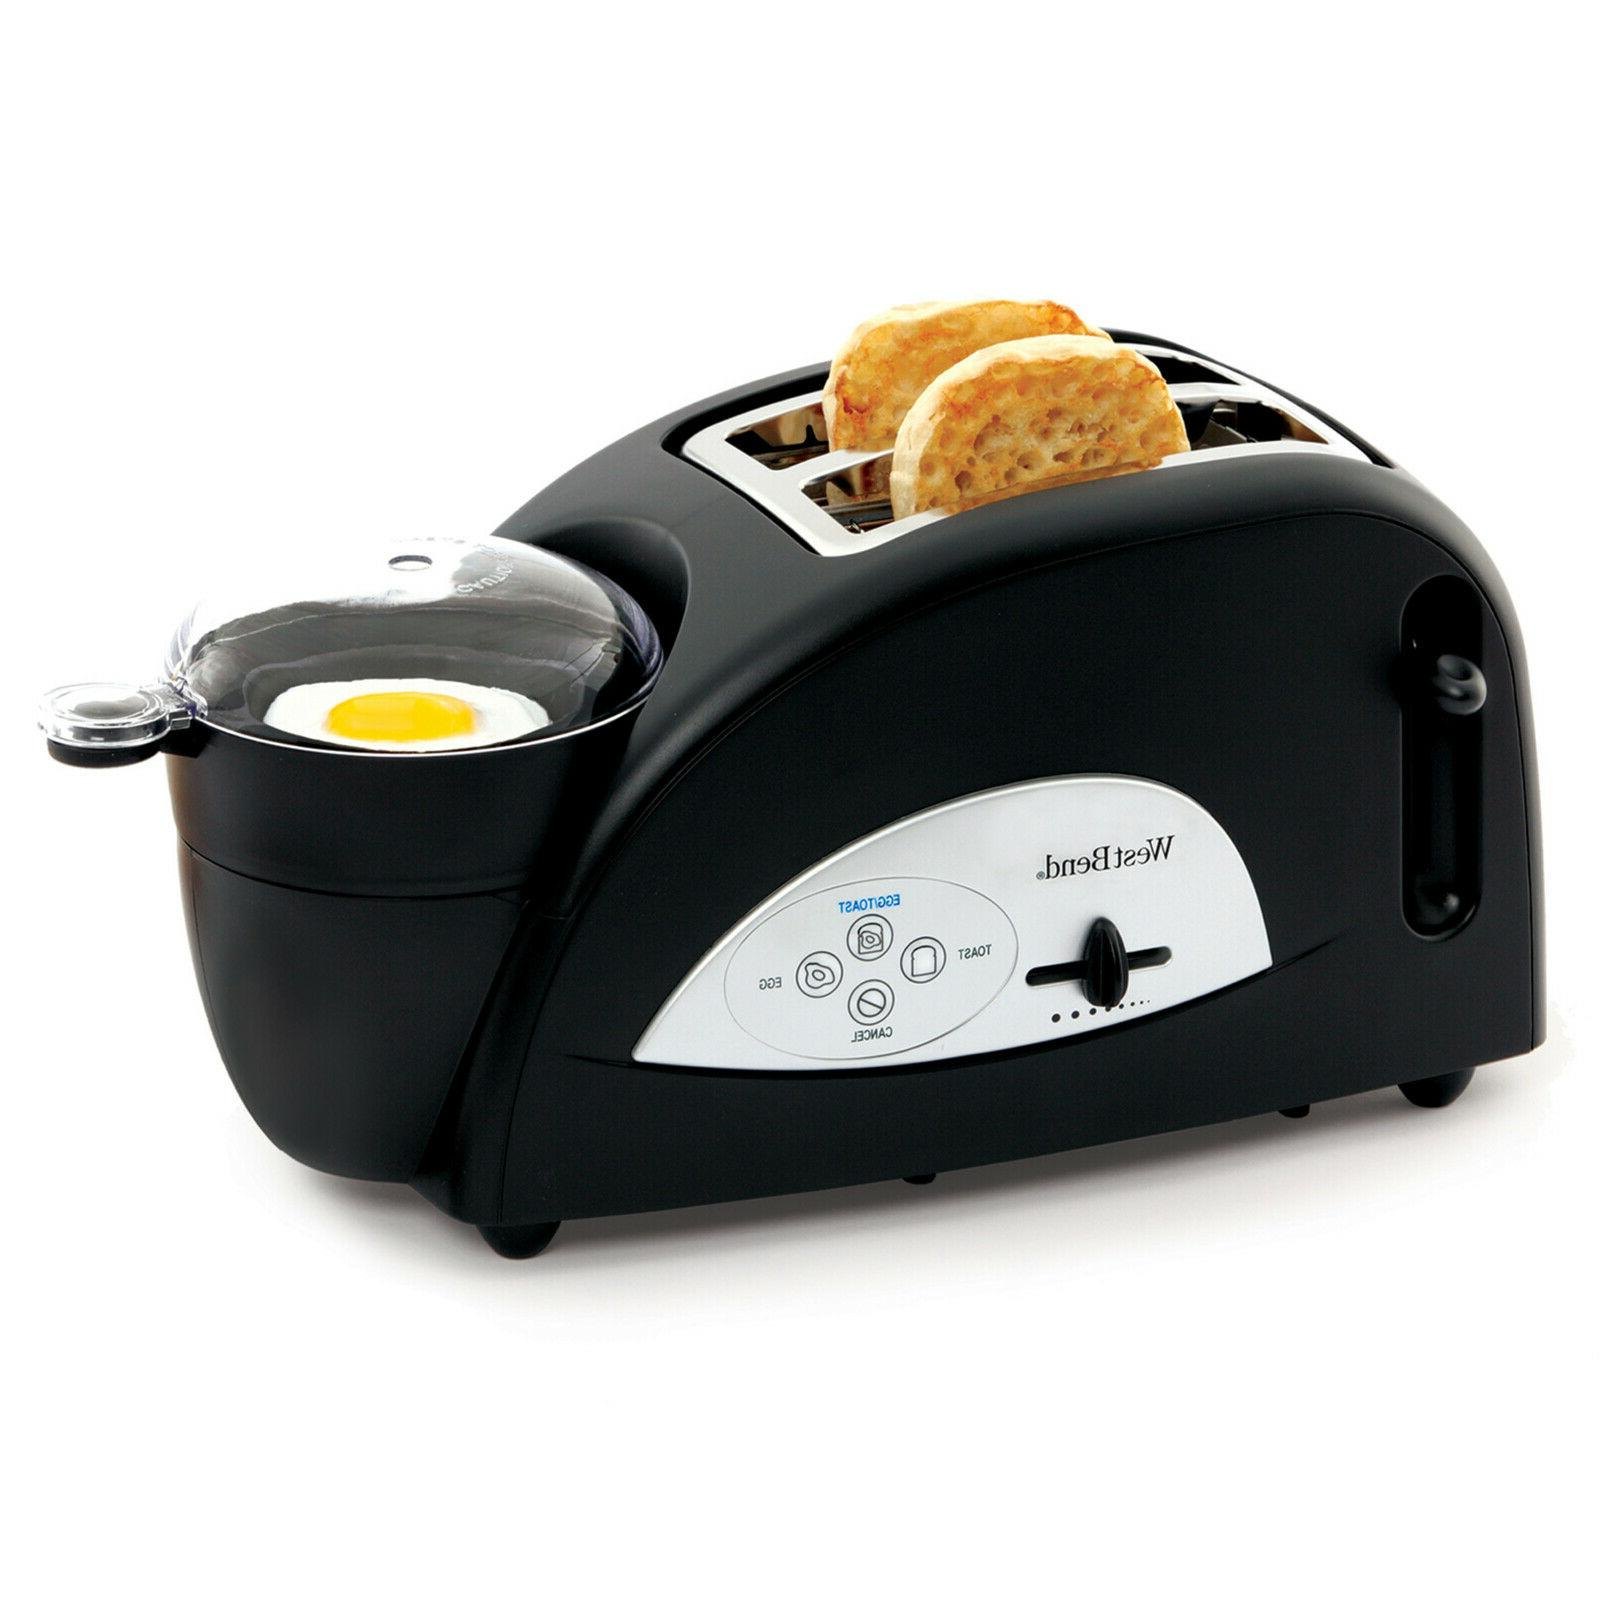 tem500w 2 slice egg muffin toaster defrost